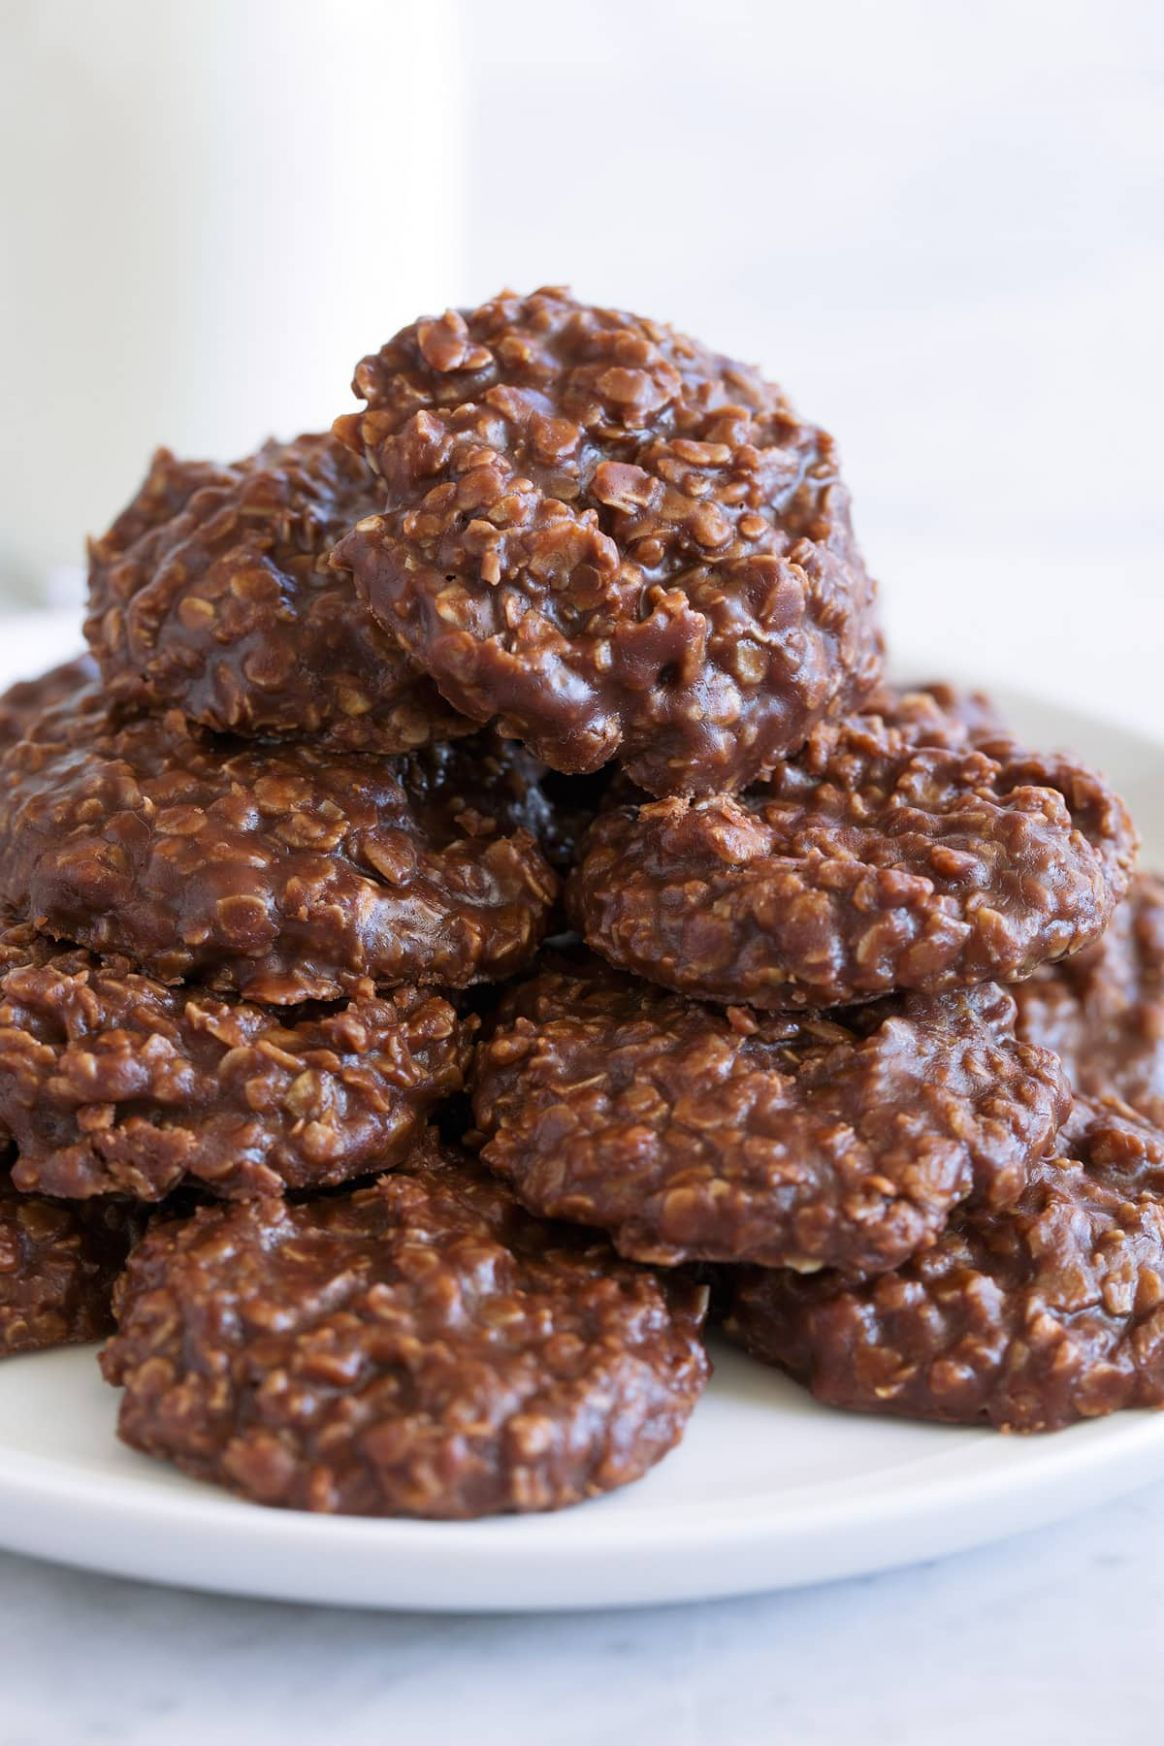 No Bake Cookies Perfect Every Time! - Cooking Classy